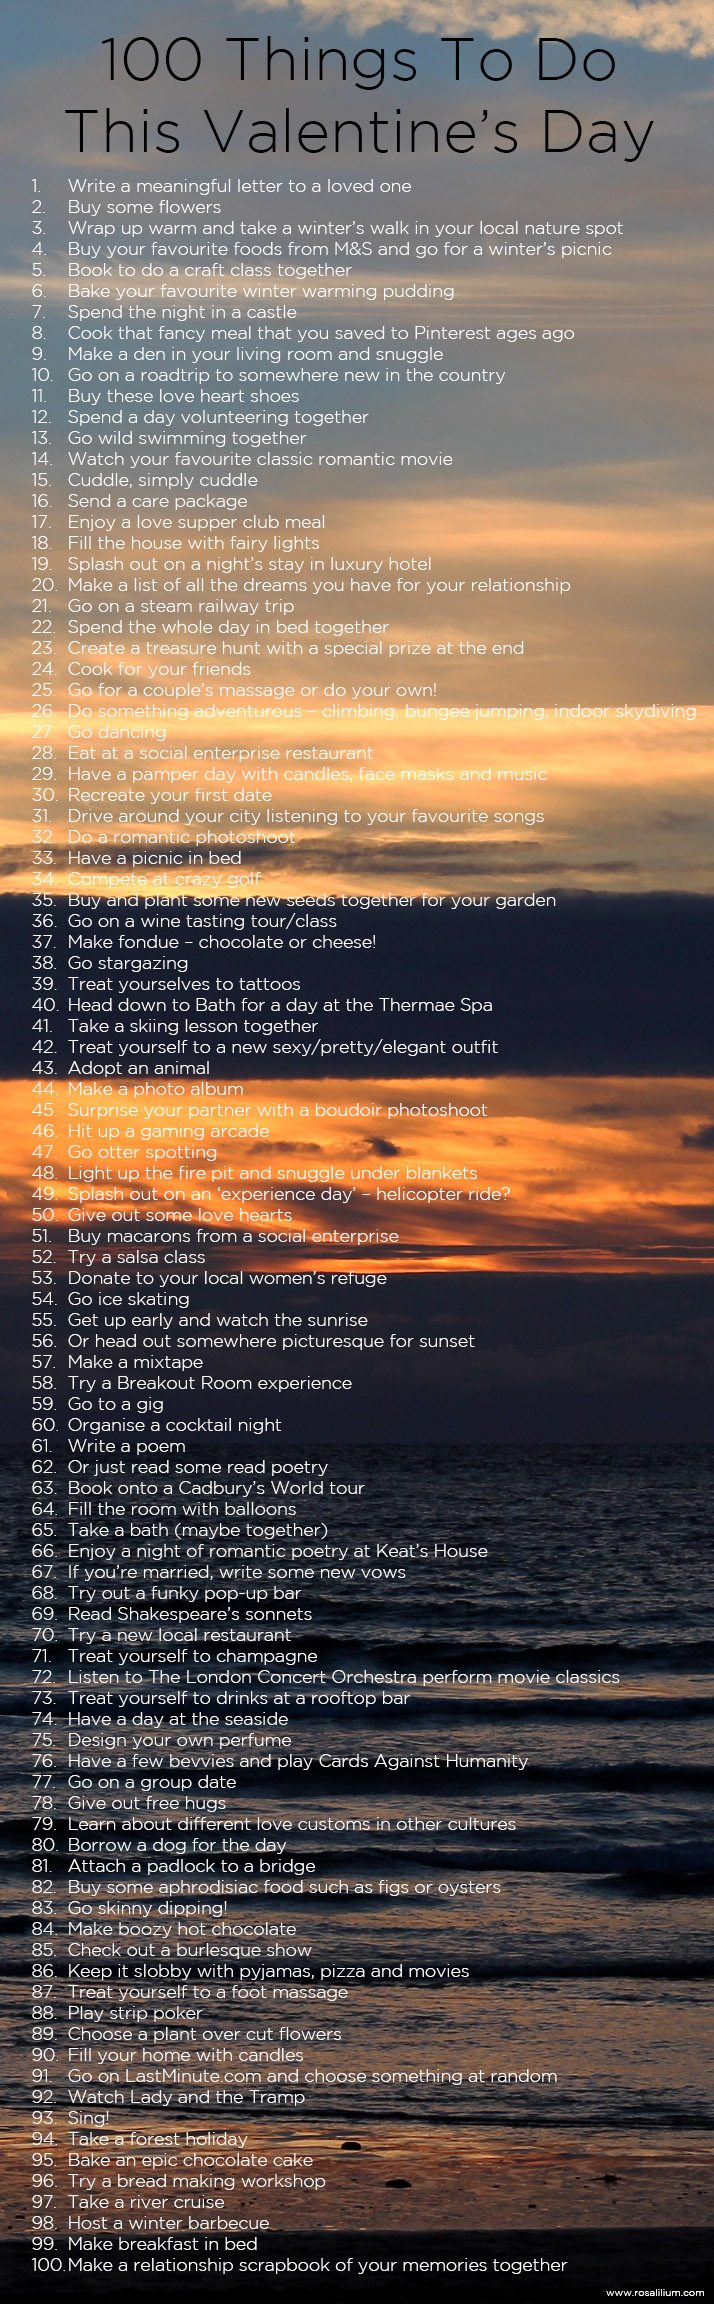 100 things to do on valentines day